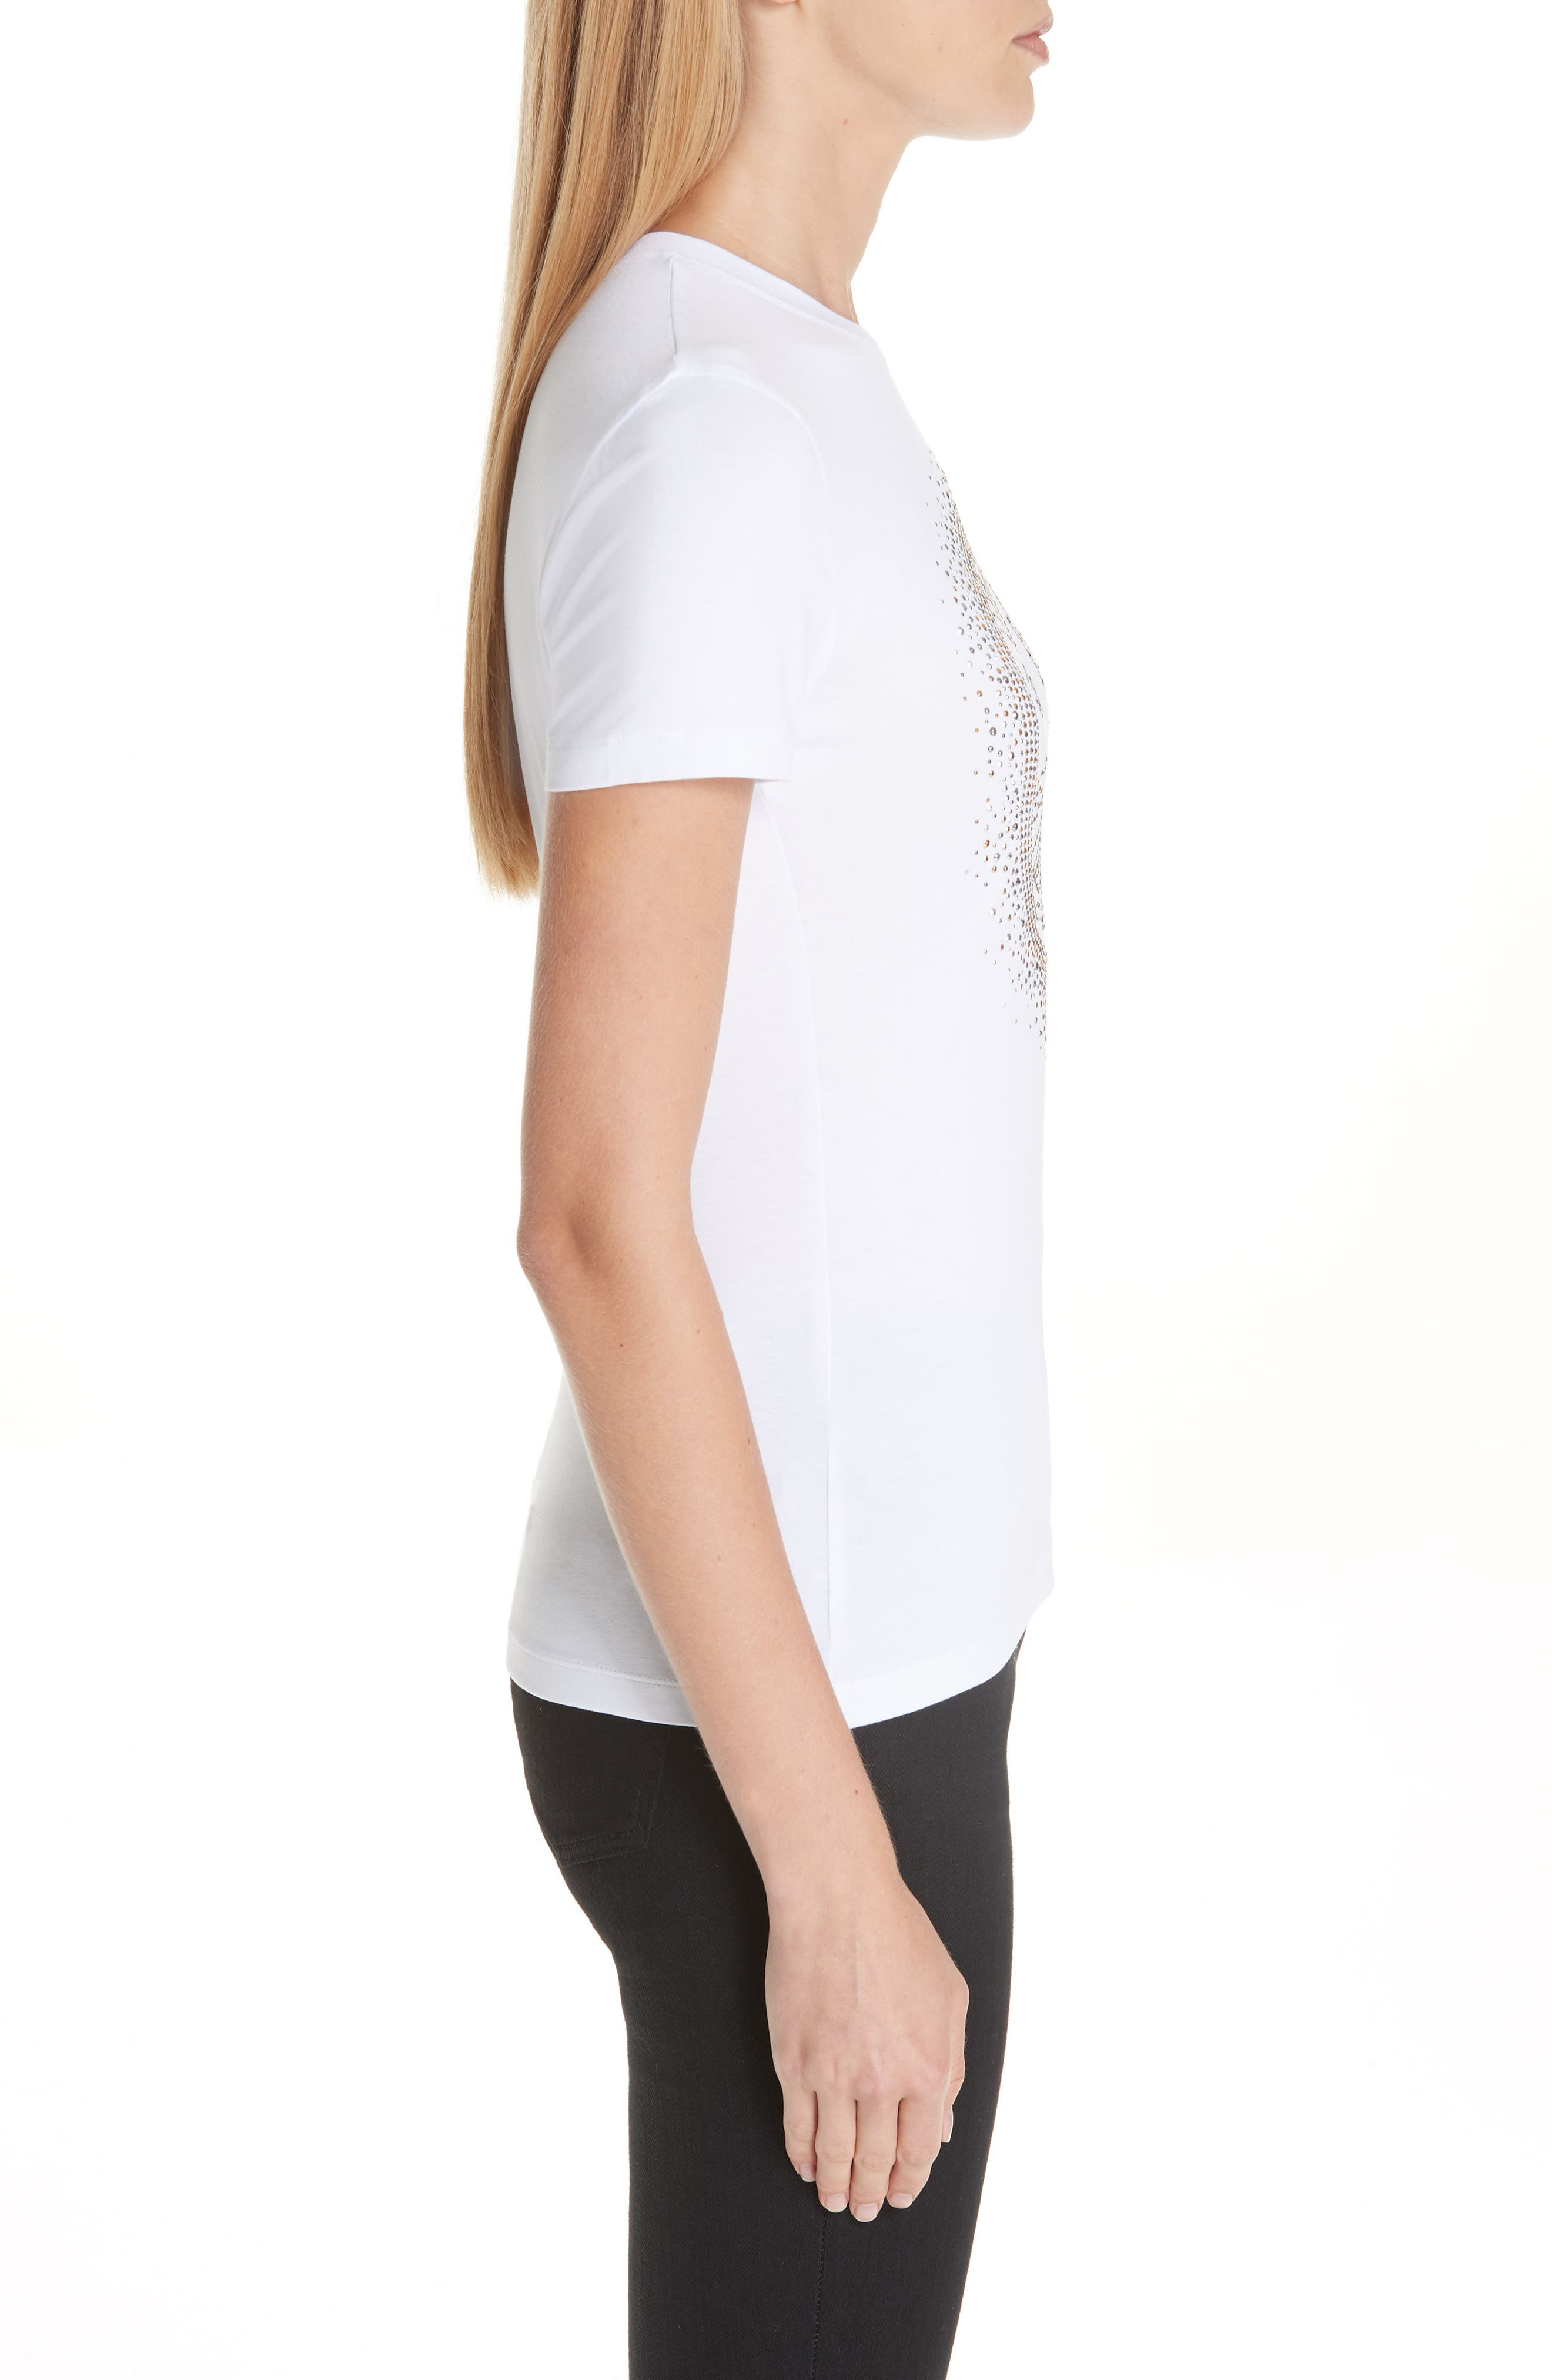 VERSACE COLLECTION, Medusa Crystal Embellished Jersey Tee, Alternate thumbnail 3, color, 111